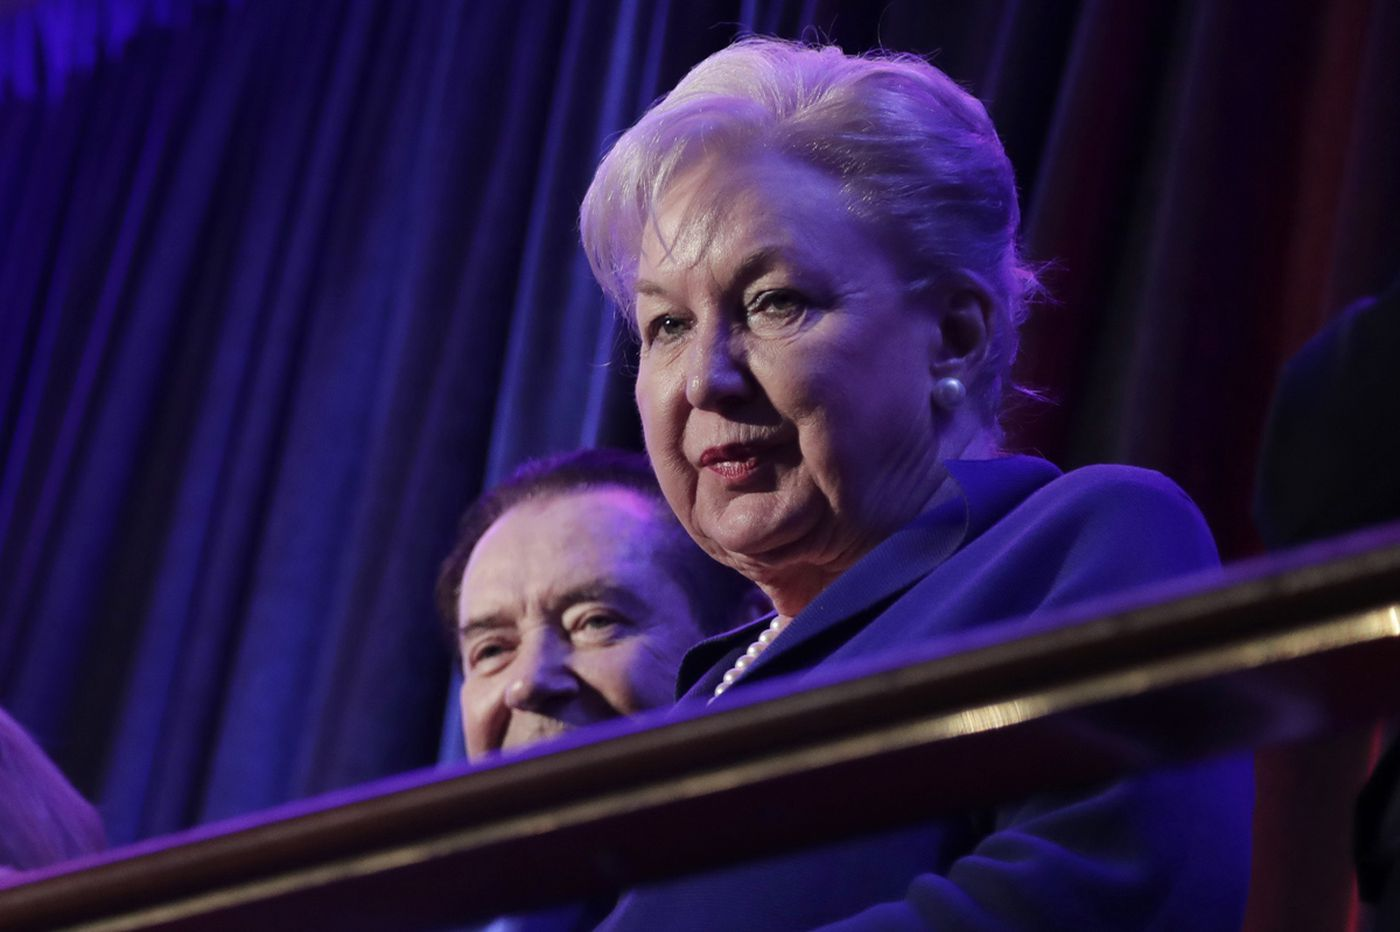 Trump's sister retires as federal judge in Philadelphia amid reported probe of family finances